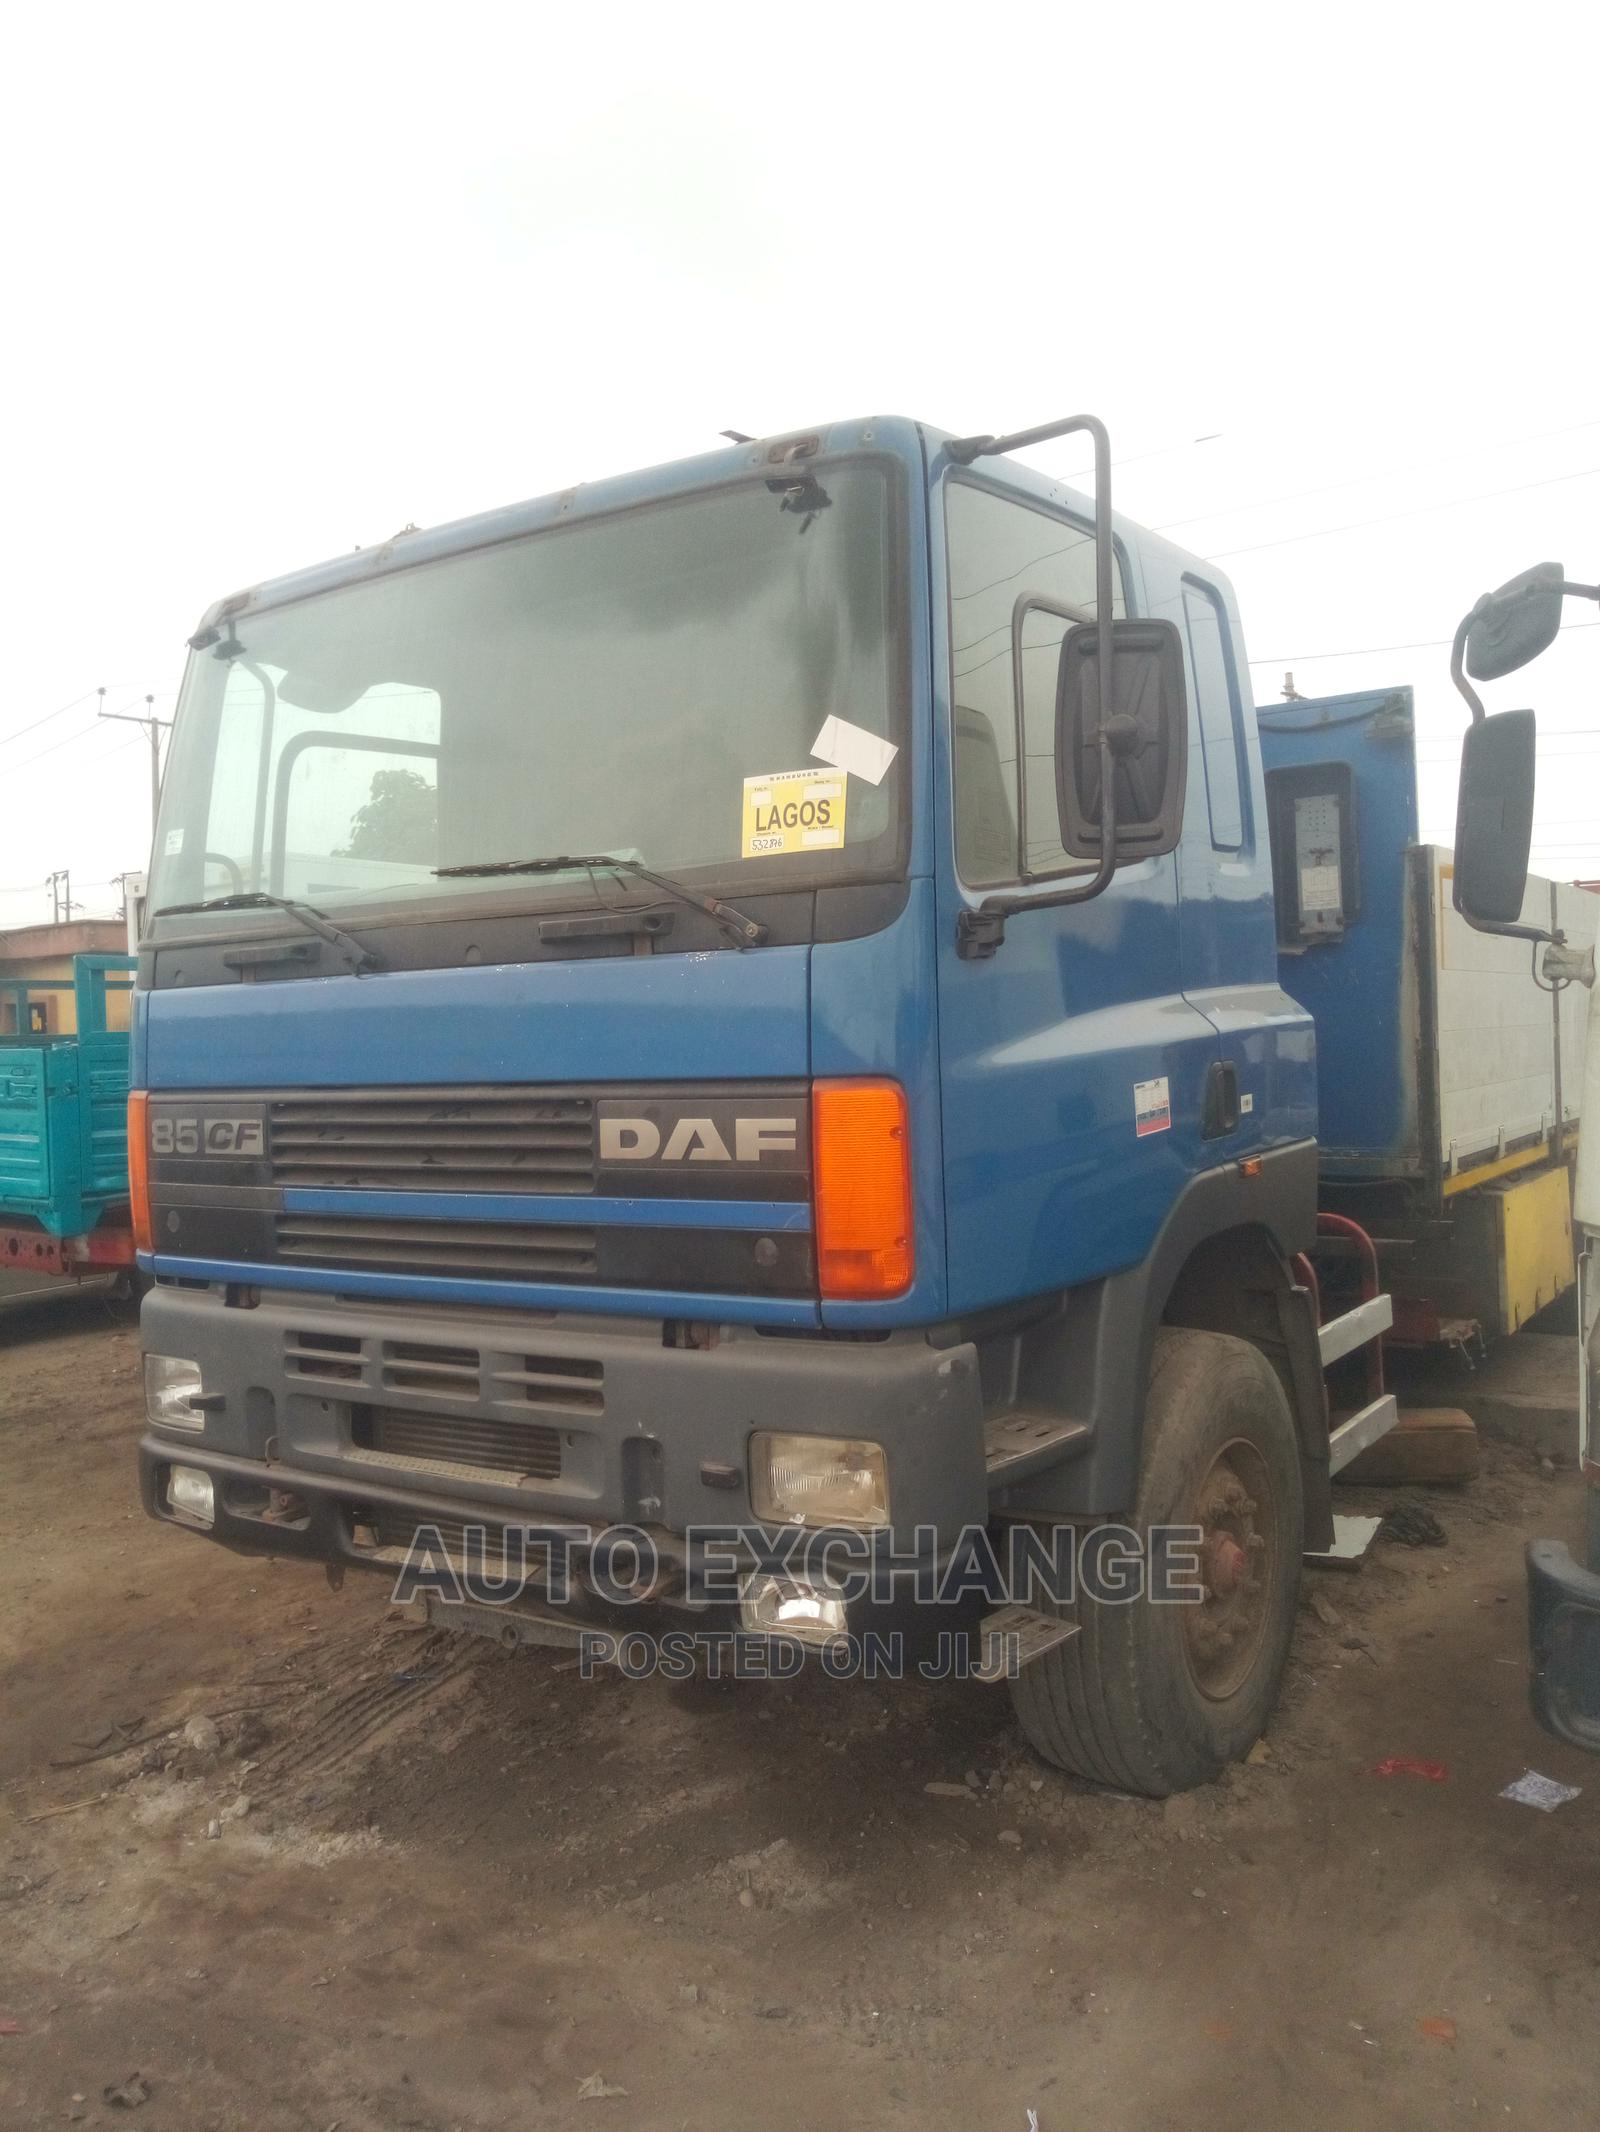 Archive: DAF CF 85, Truck 10 Tyres, for Haulage and Logistic